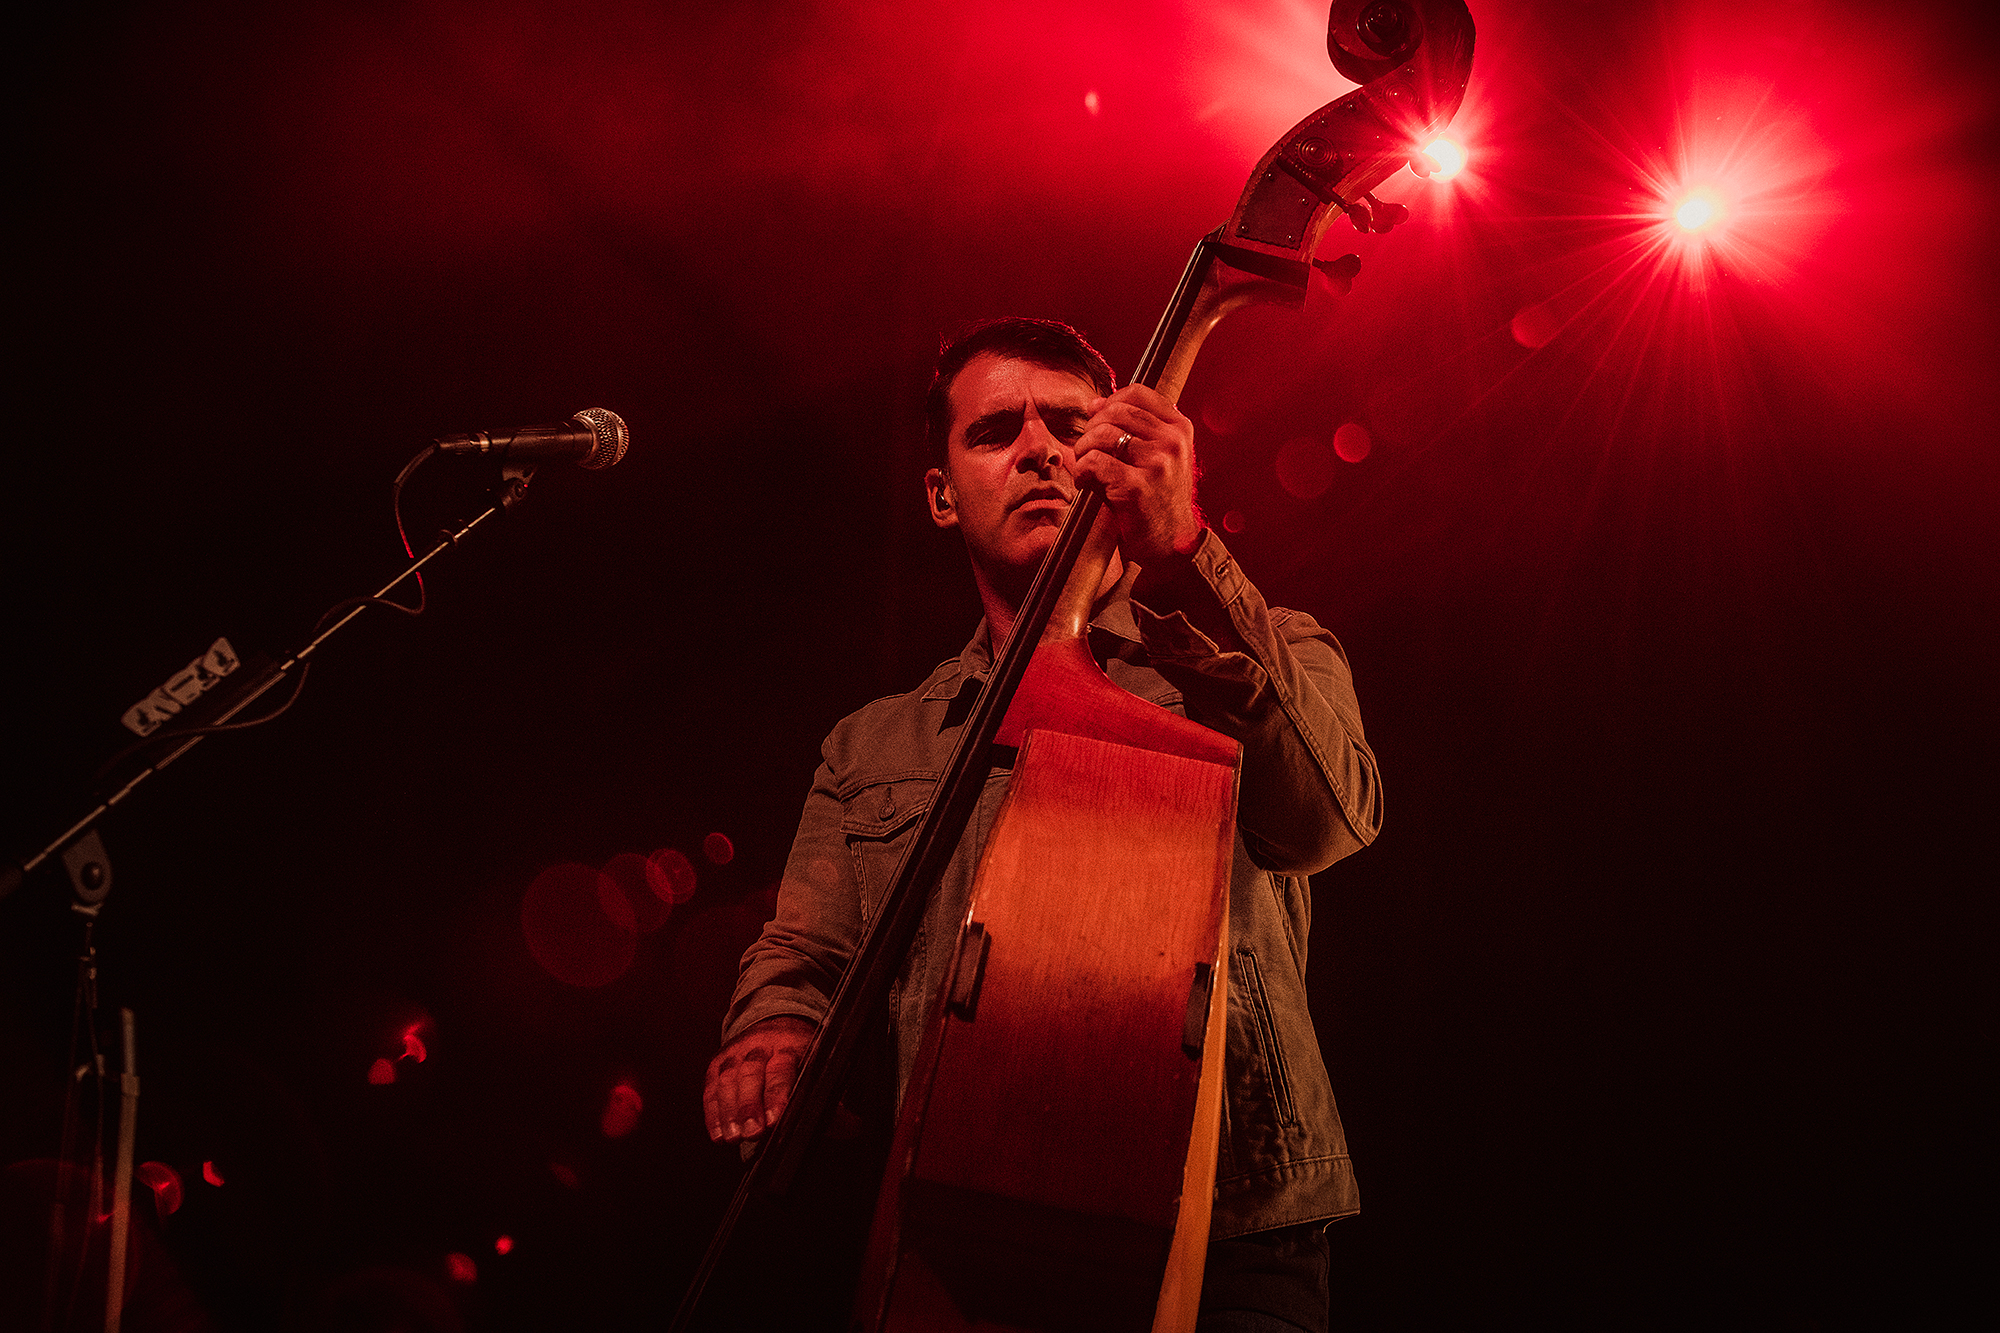 The Avett Brothers at the Greek Theater, Los Angeles, CA  2019.08.22